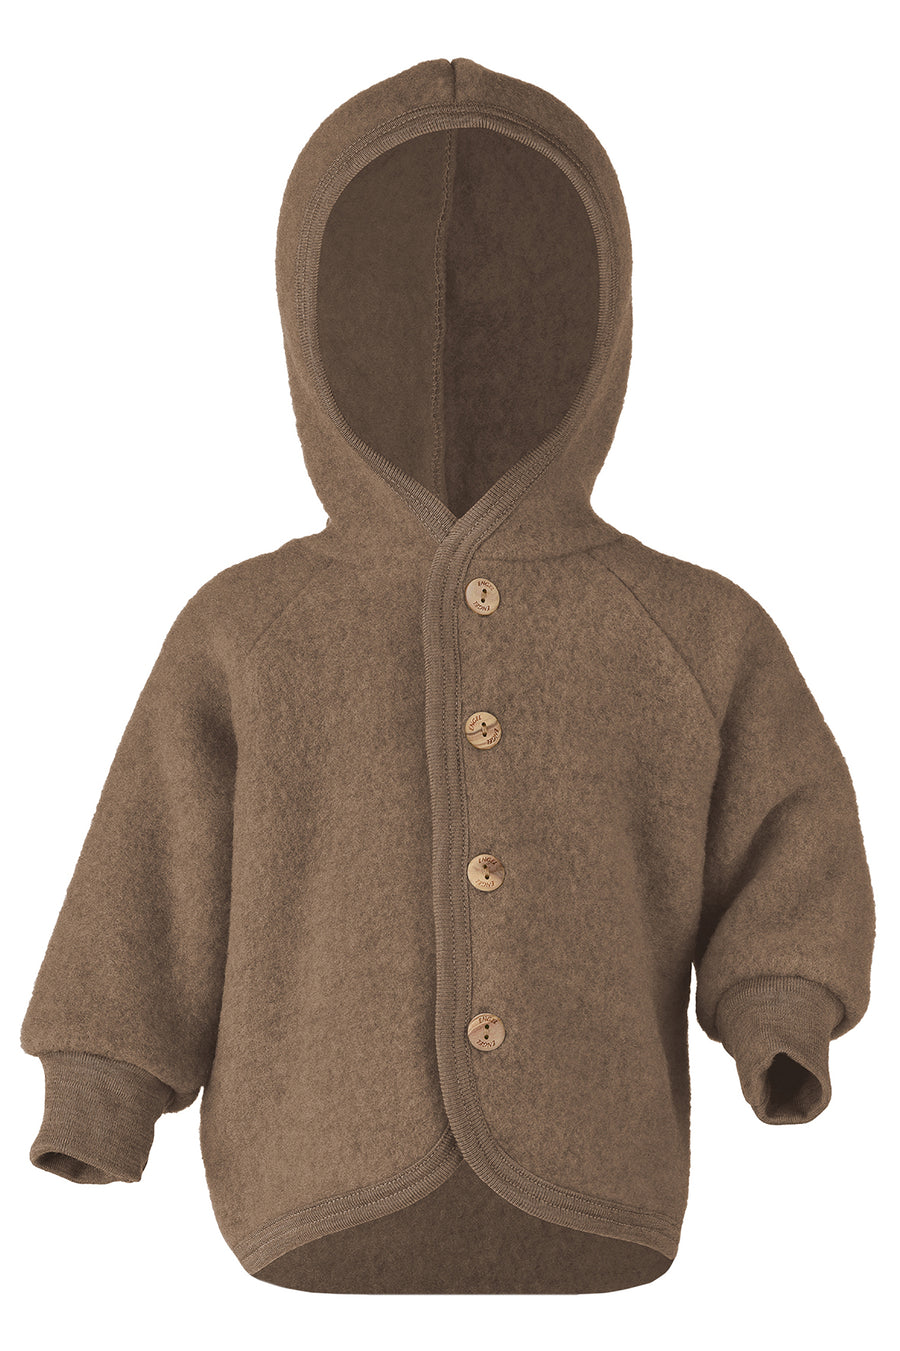 ENGEL NATUR - Hooded Jacket - Walnut